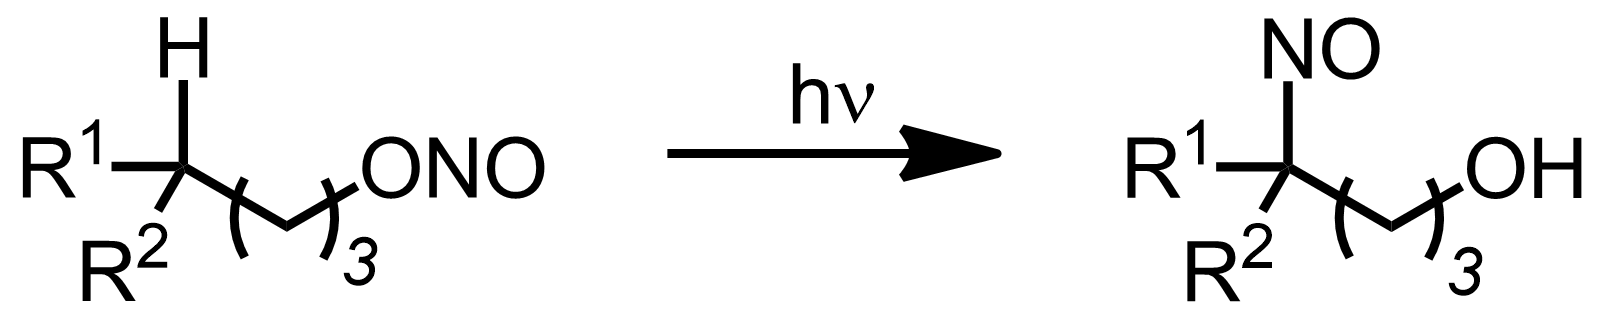 Schematic representation of the Barton Reaction.